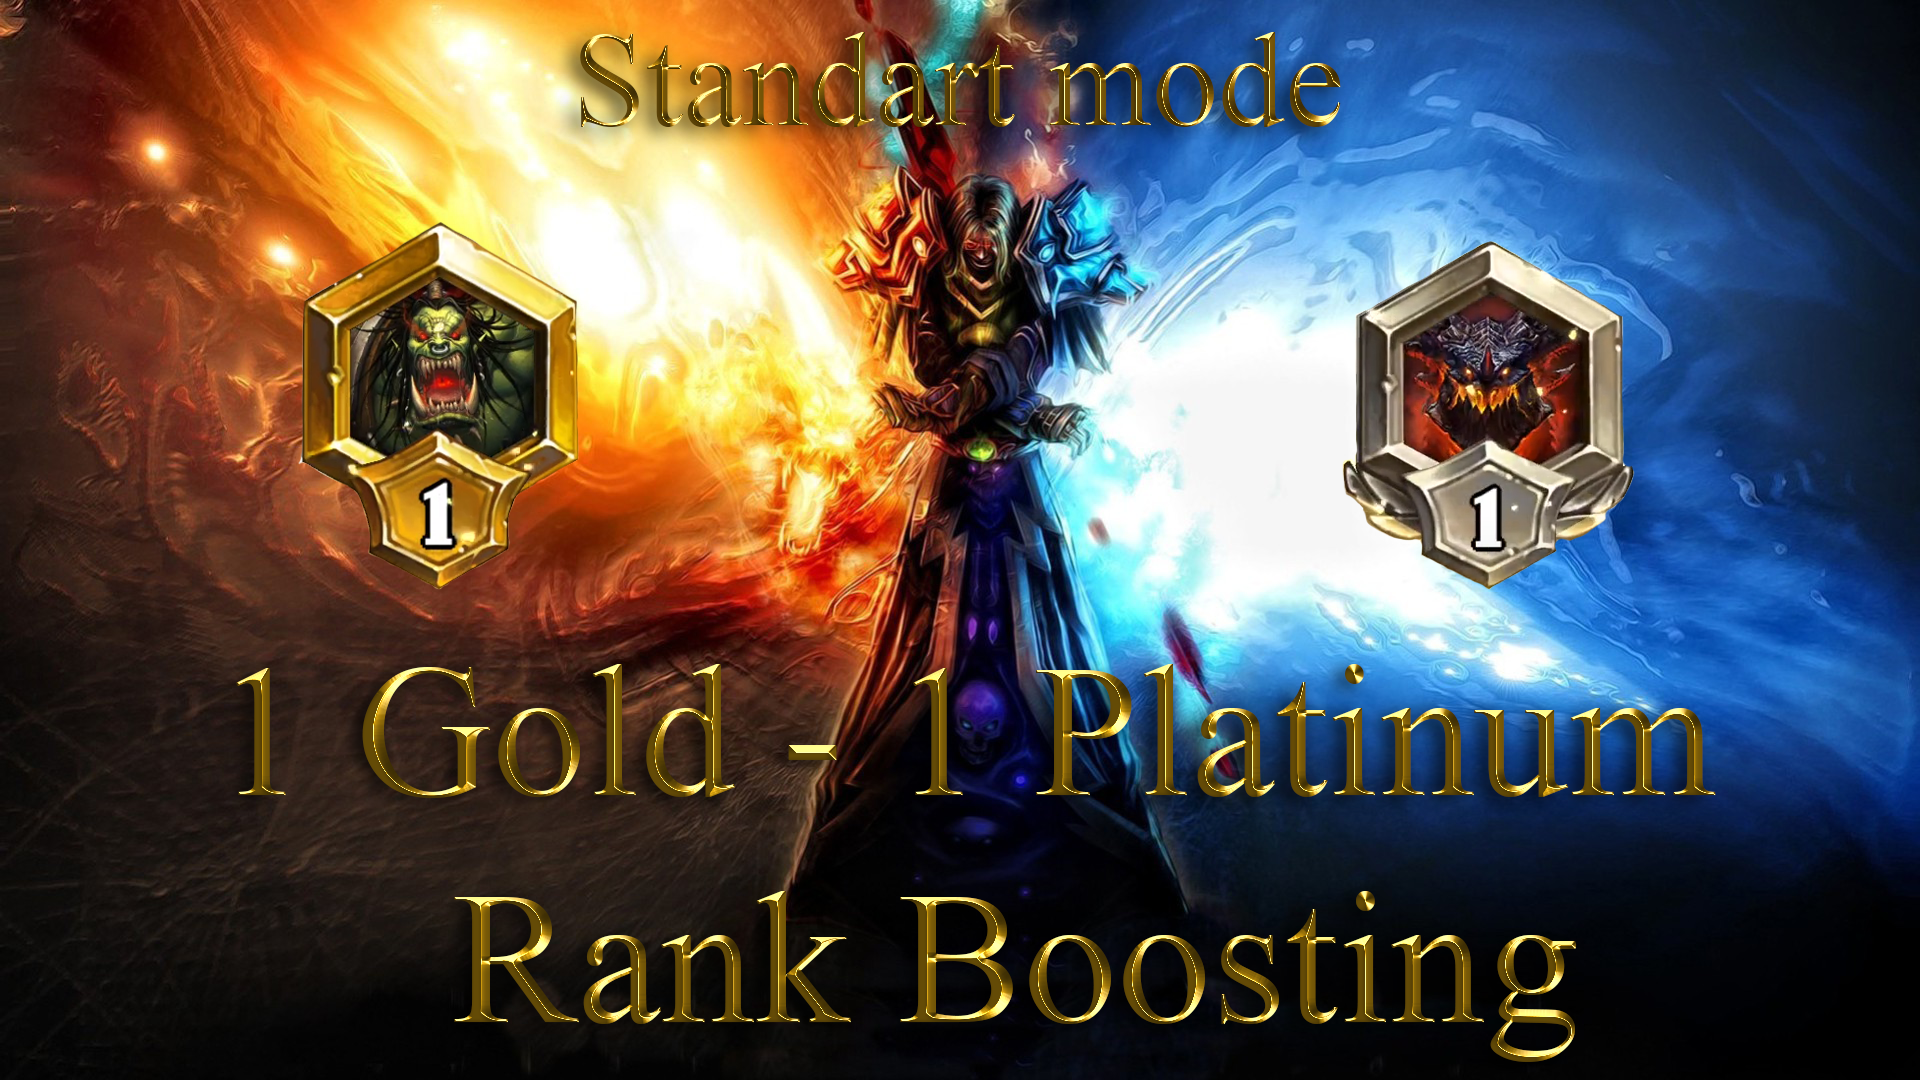 HEARTHSTONE: 1 RANK (Gold) - 1 RANK (Platinum) STANDART MODE GBD - e2p.com